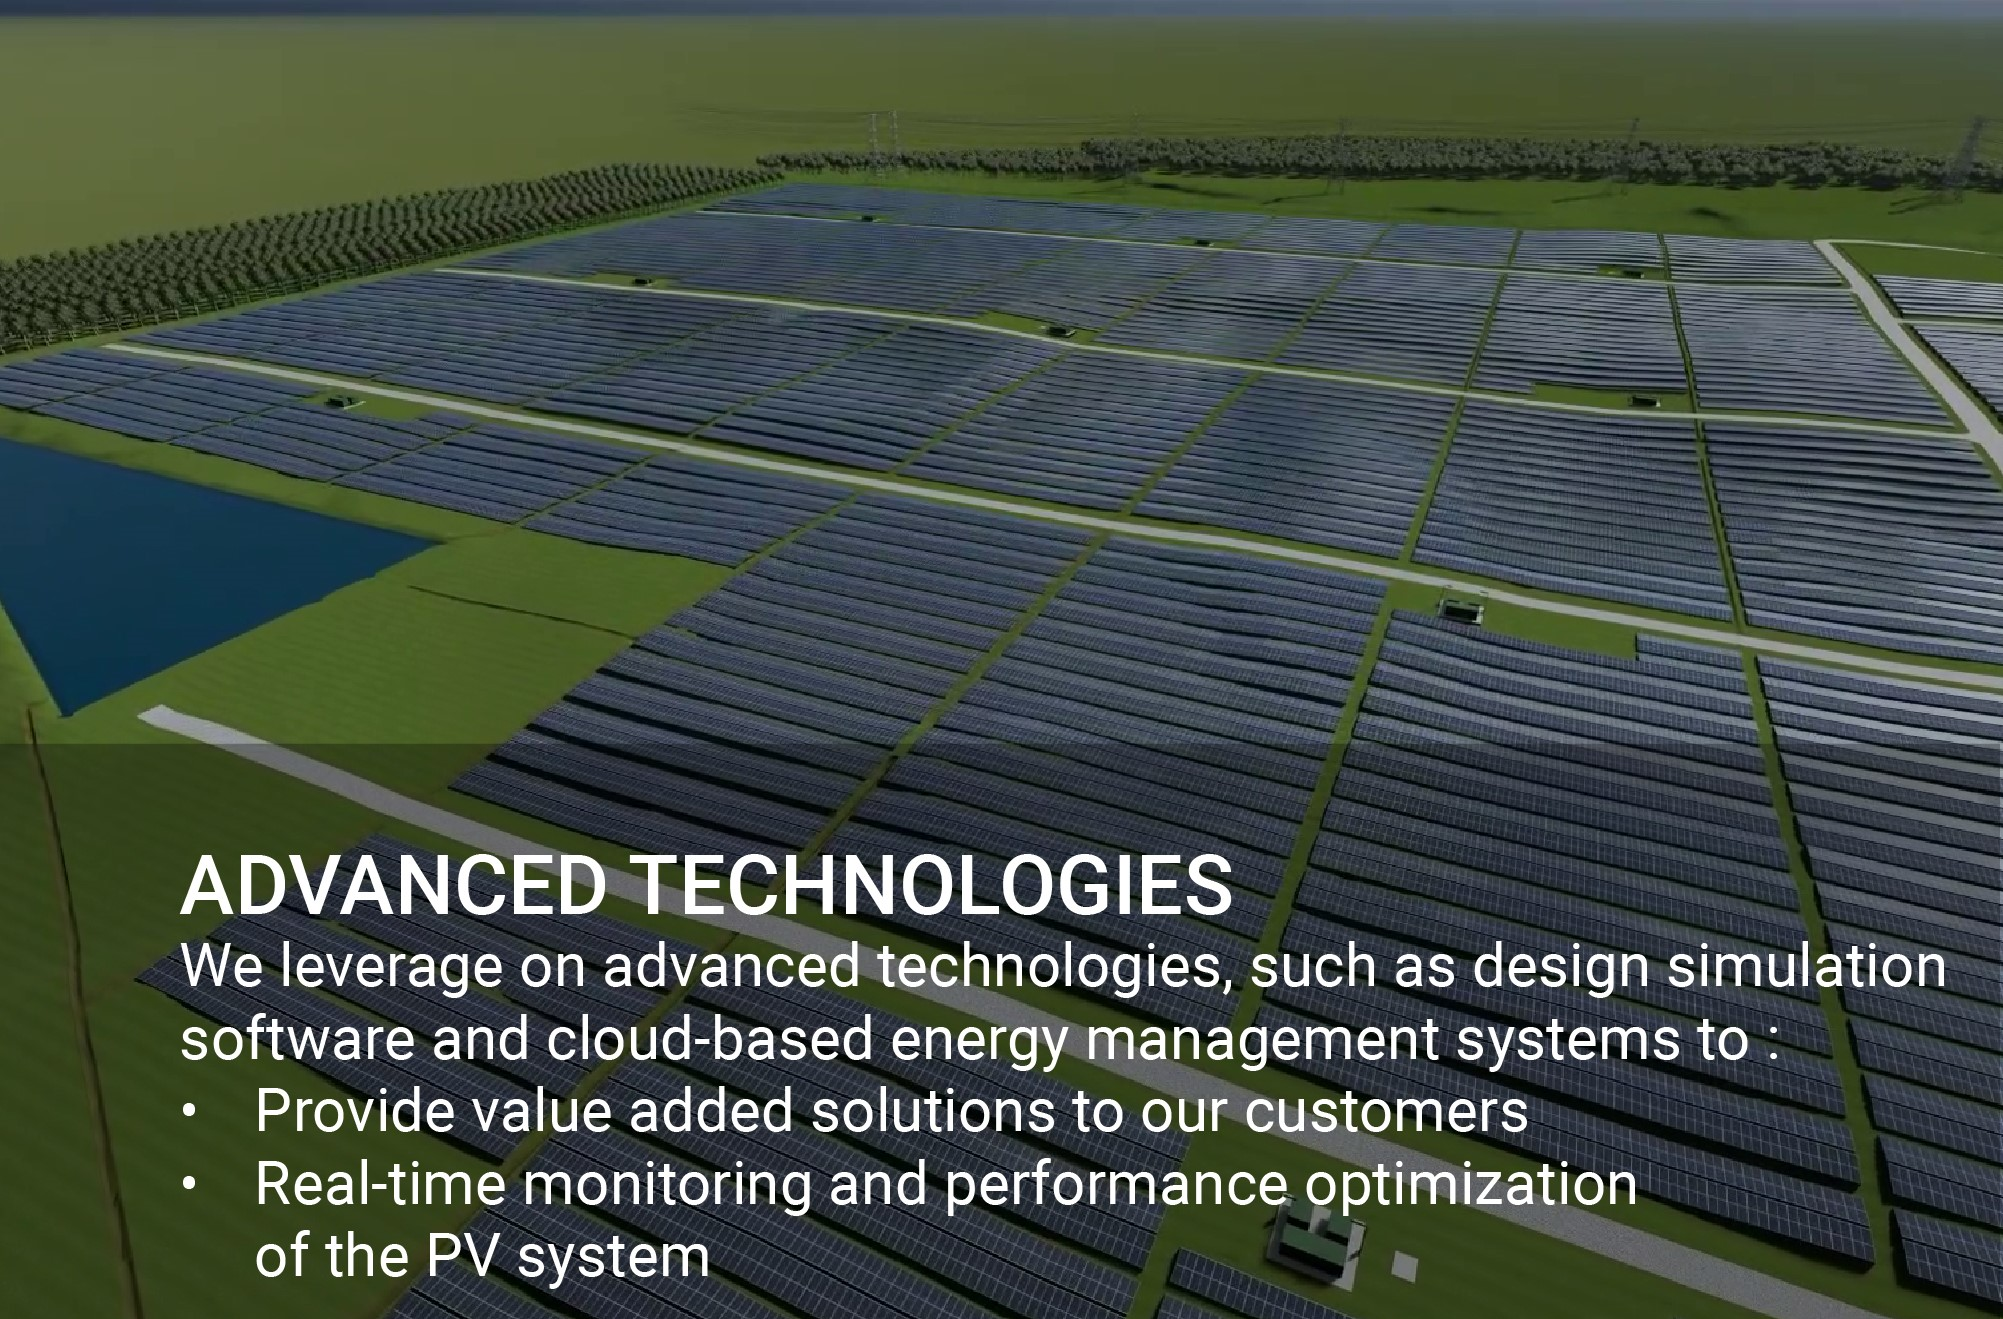 We leverage on advanced technologies, such as design simulation software and cloud-based energy management systems to : • Provide value added solutions to our customers • Real-time monitoring and performance optimization of the PV system